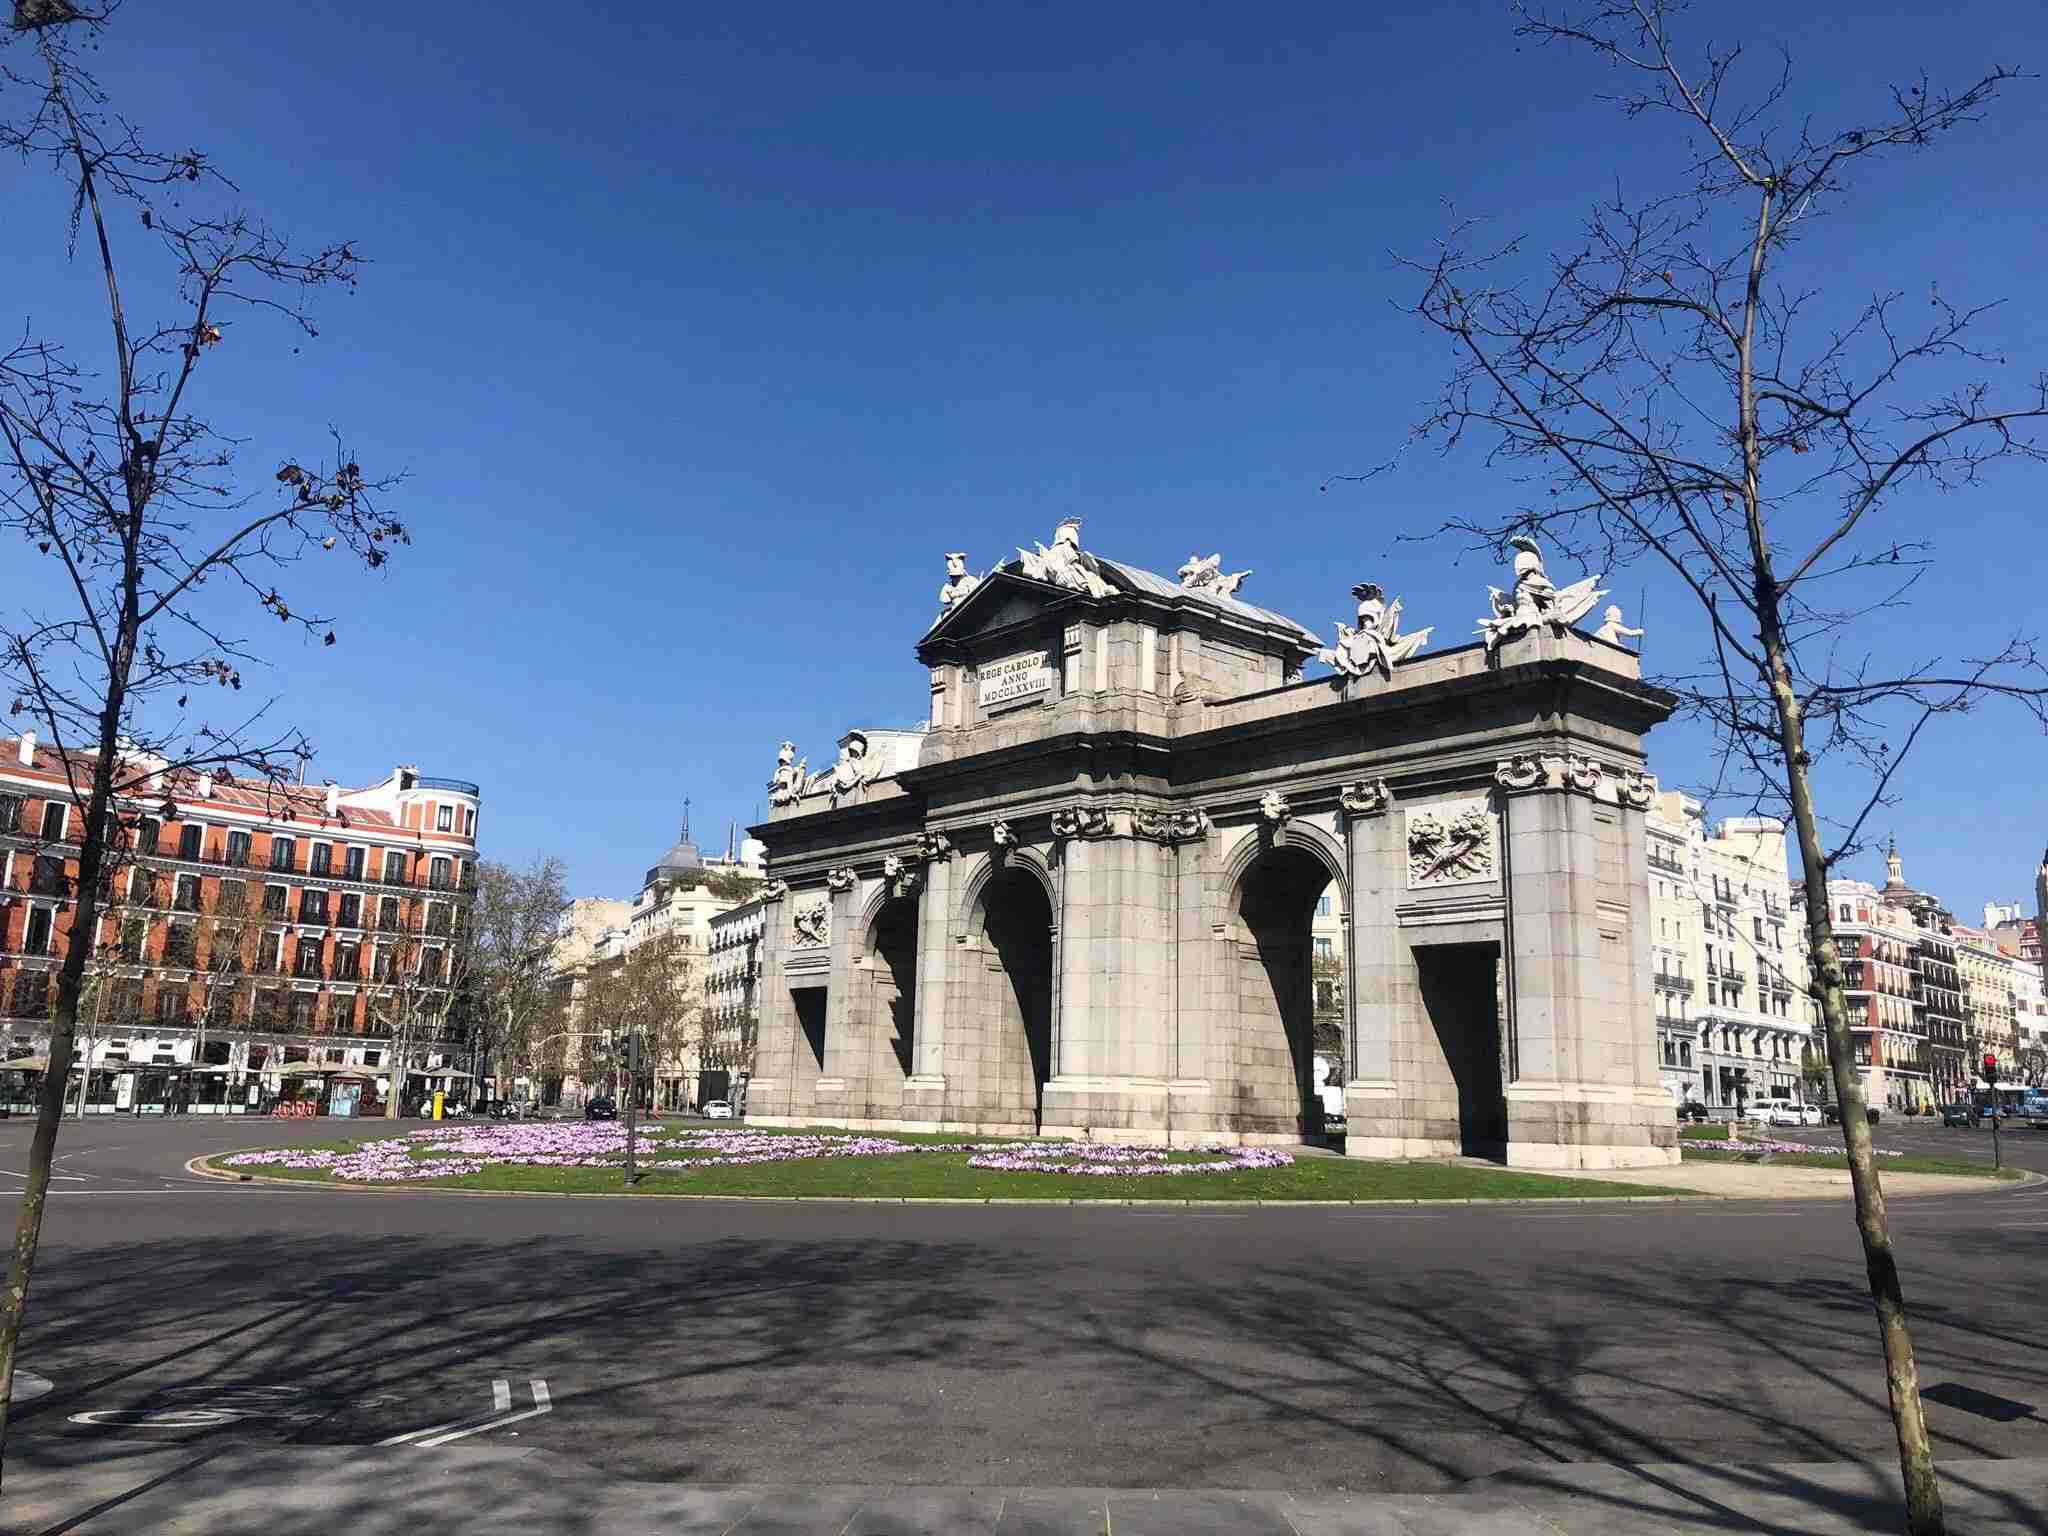 Normally busy 24/7, the traffic circle around Madrid